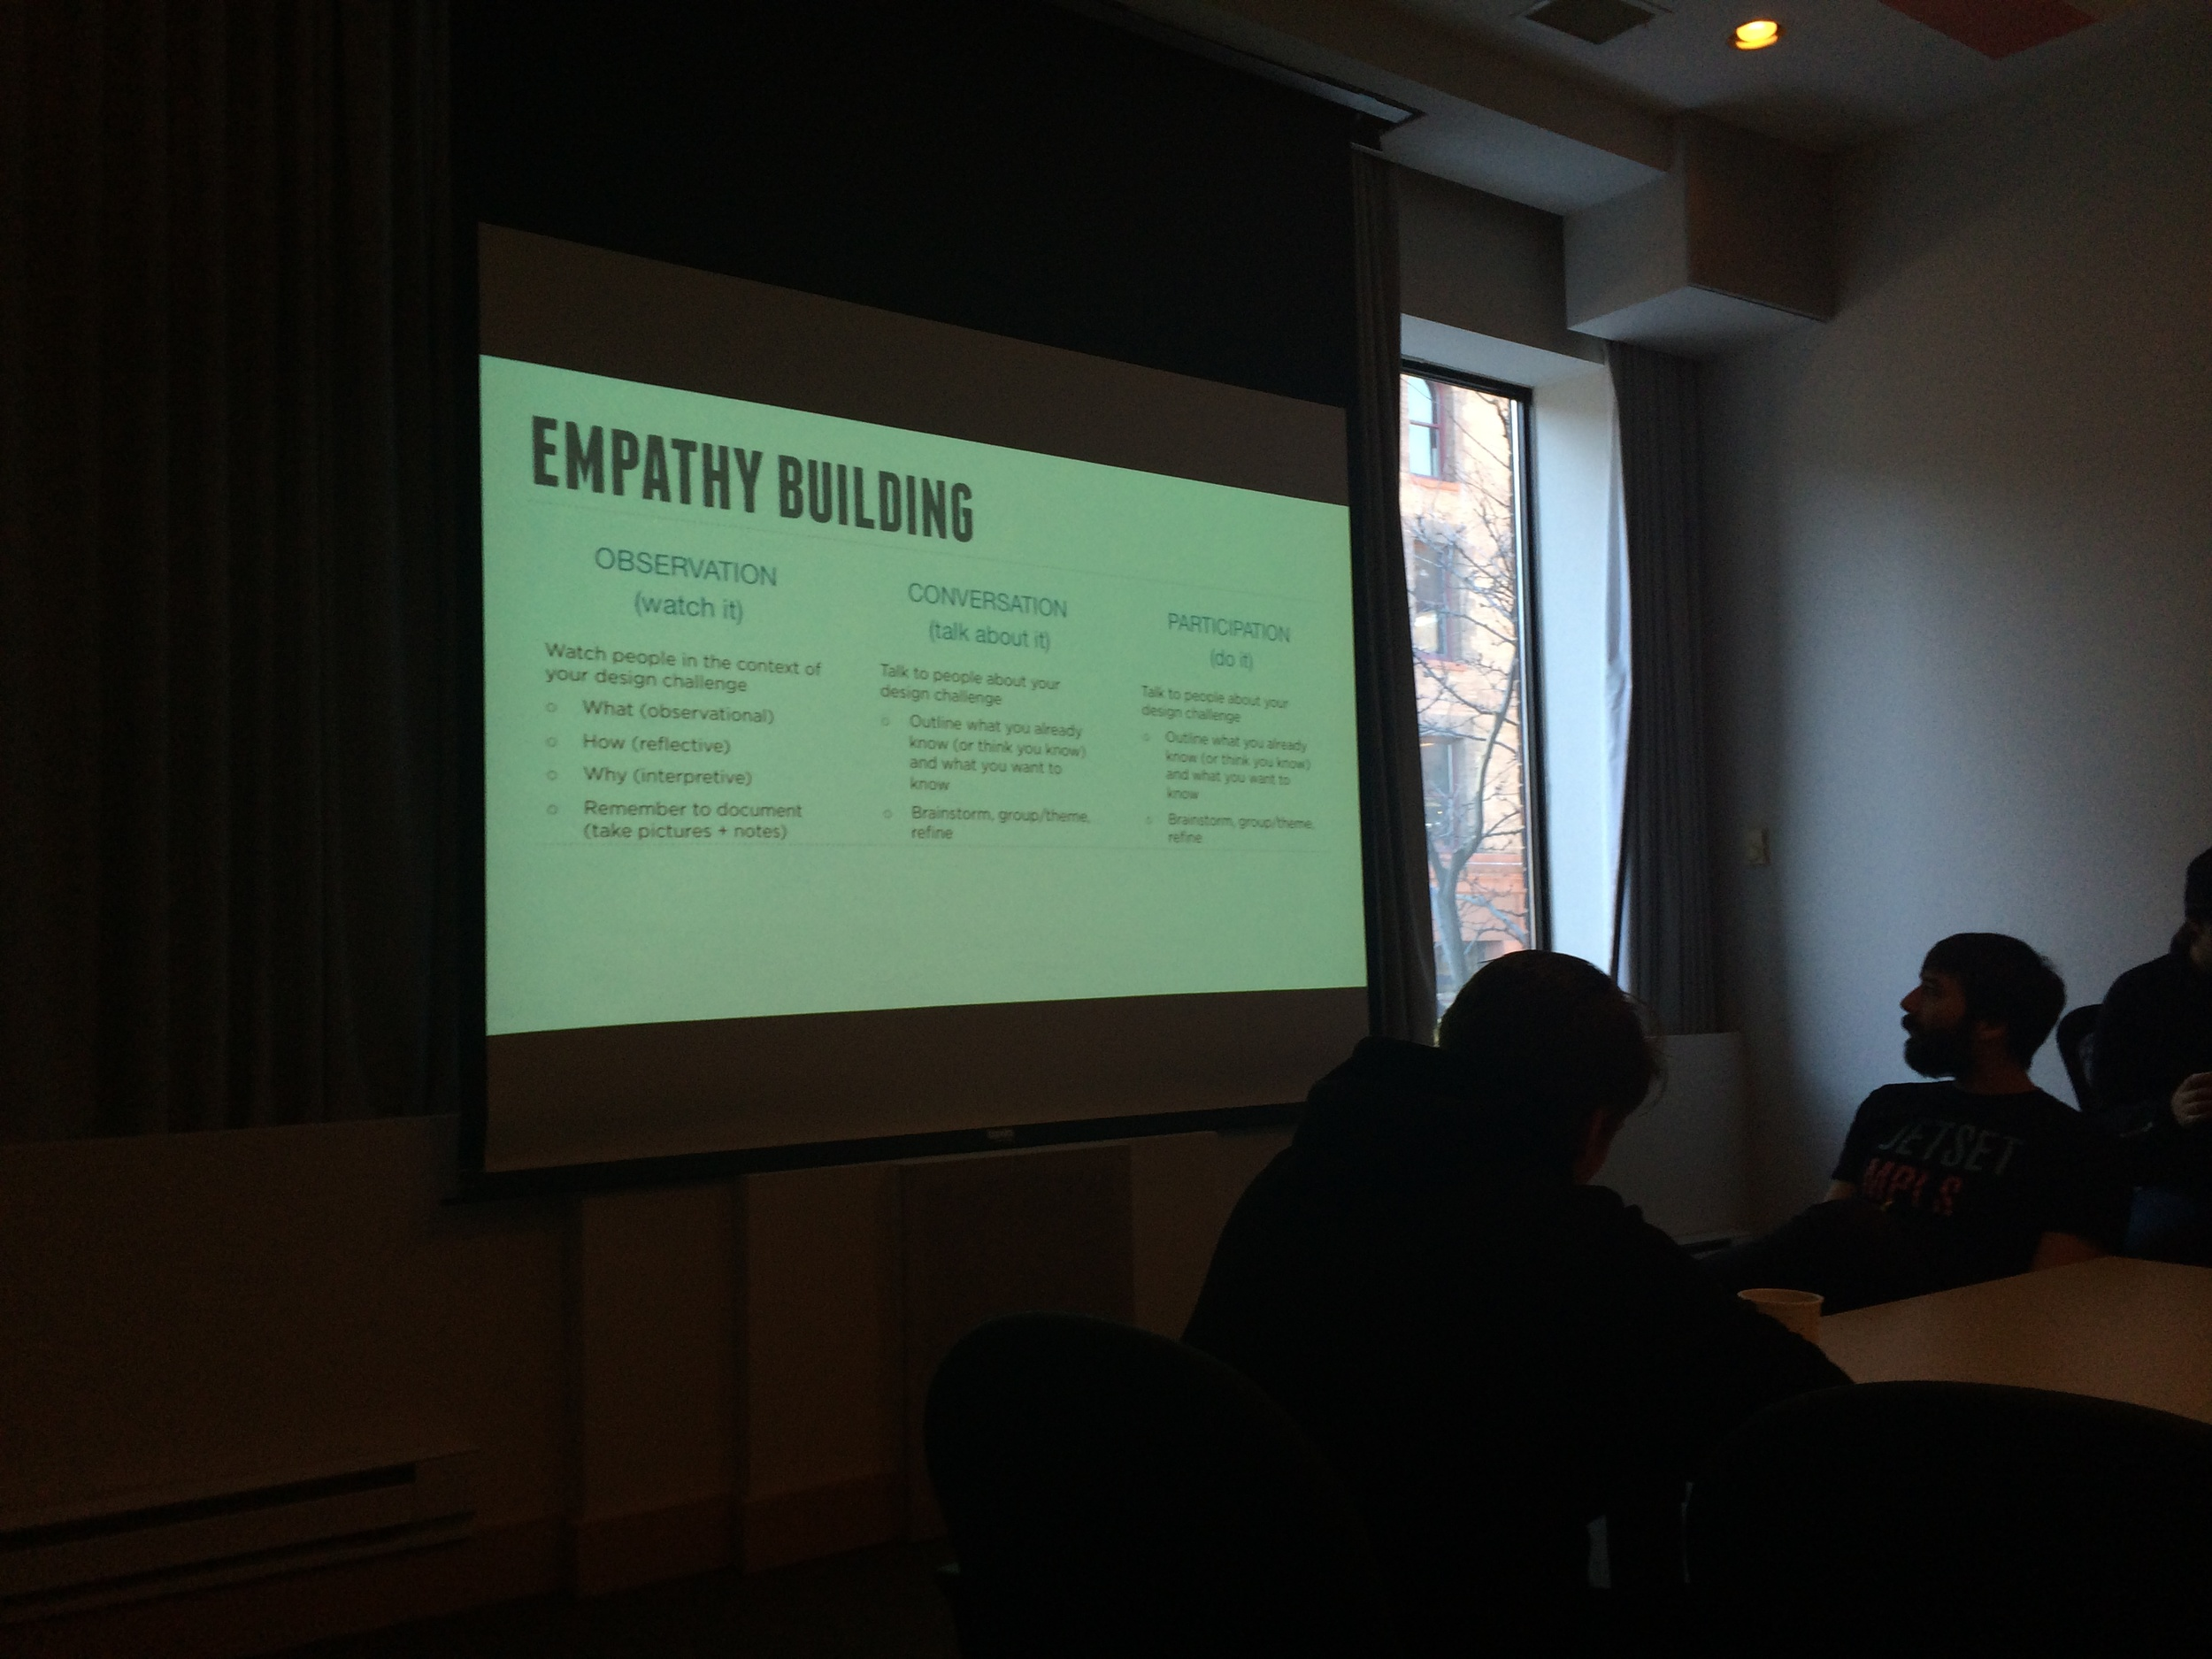 Learning how to apply empathy to service design